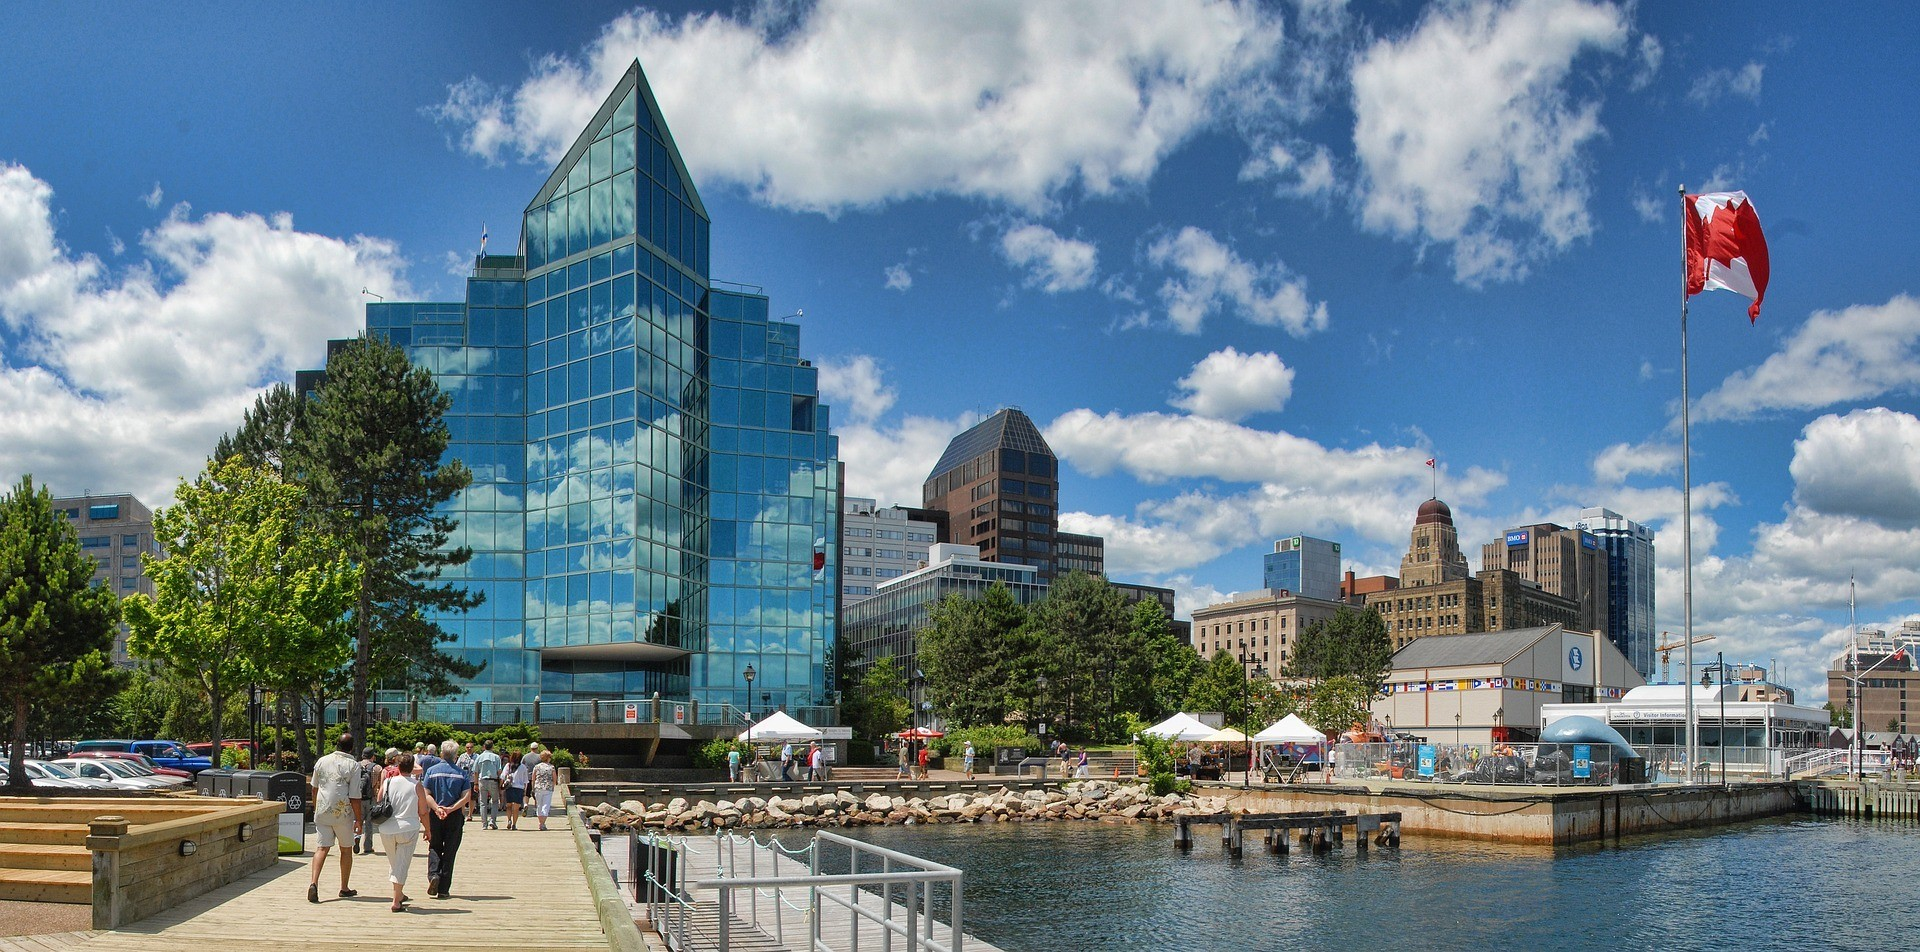 cityscape of halifax nova scotia canada